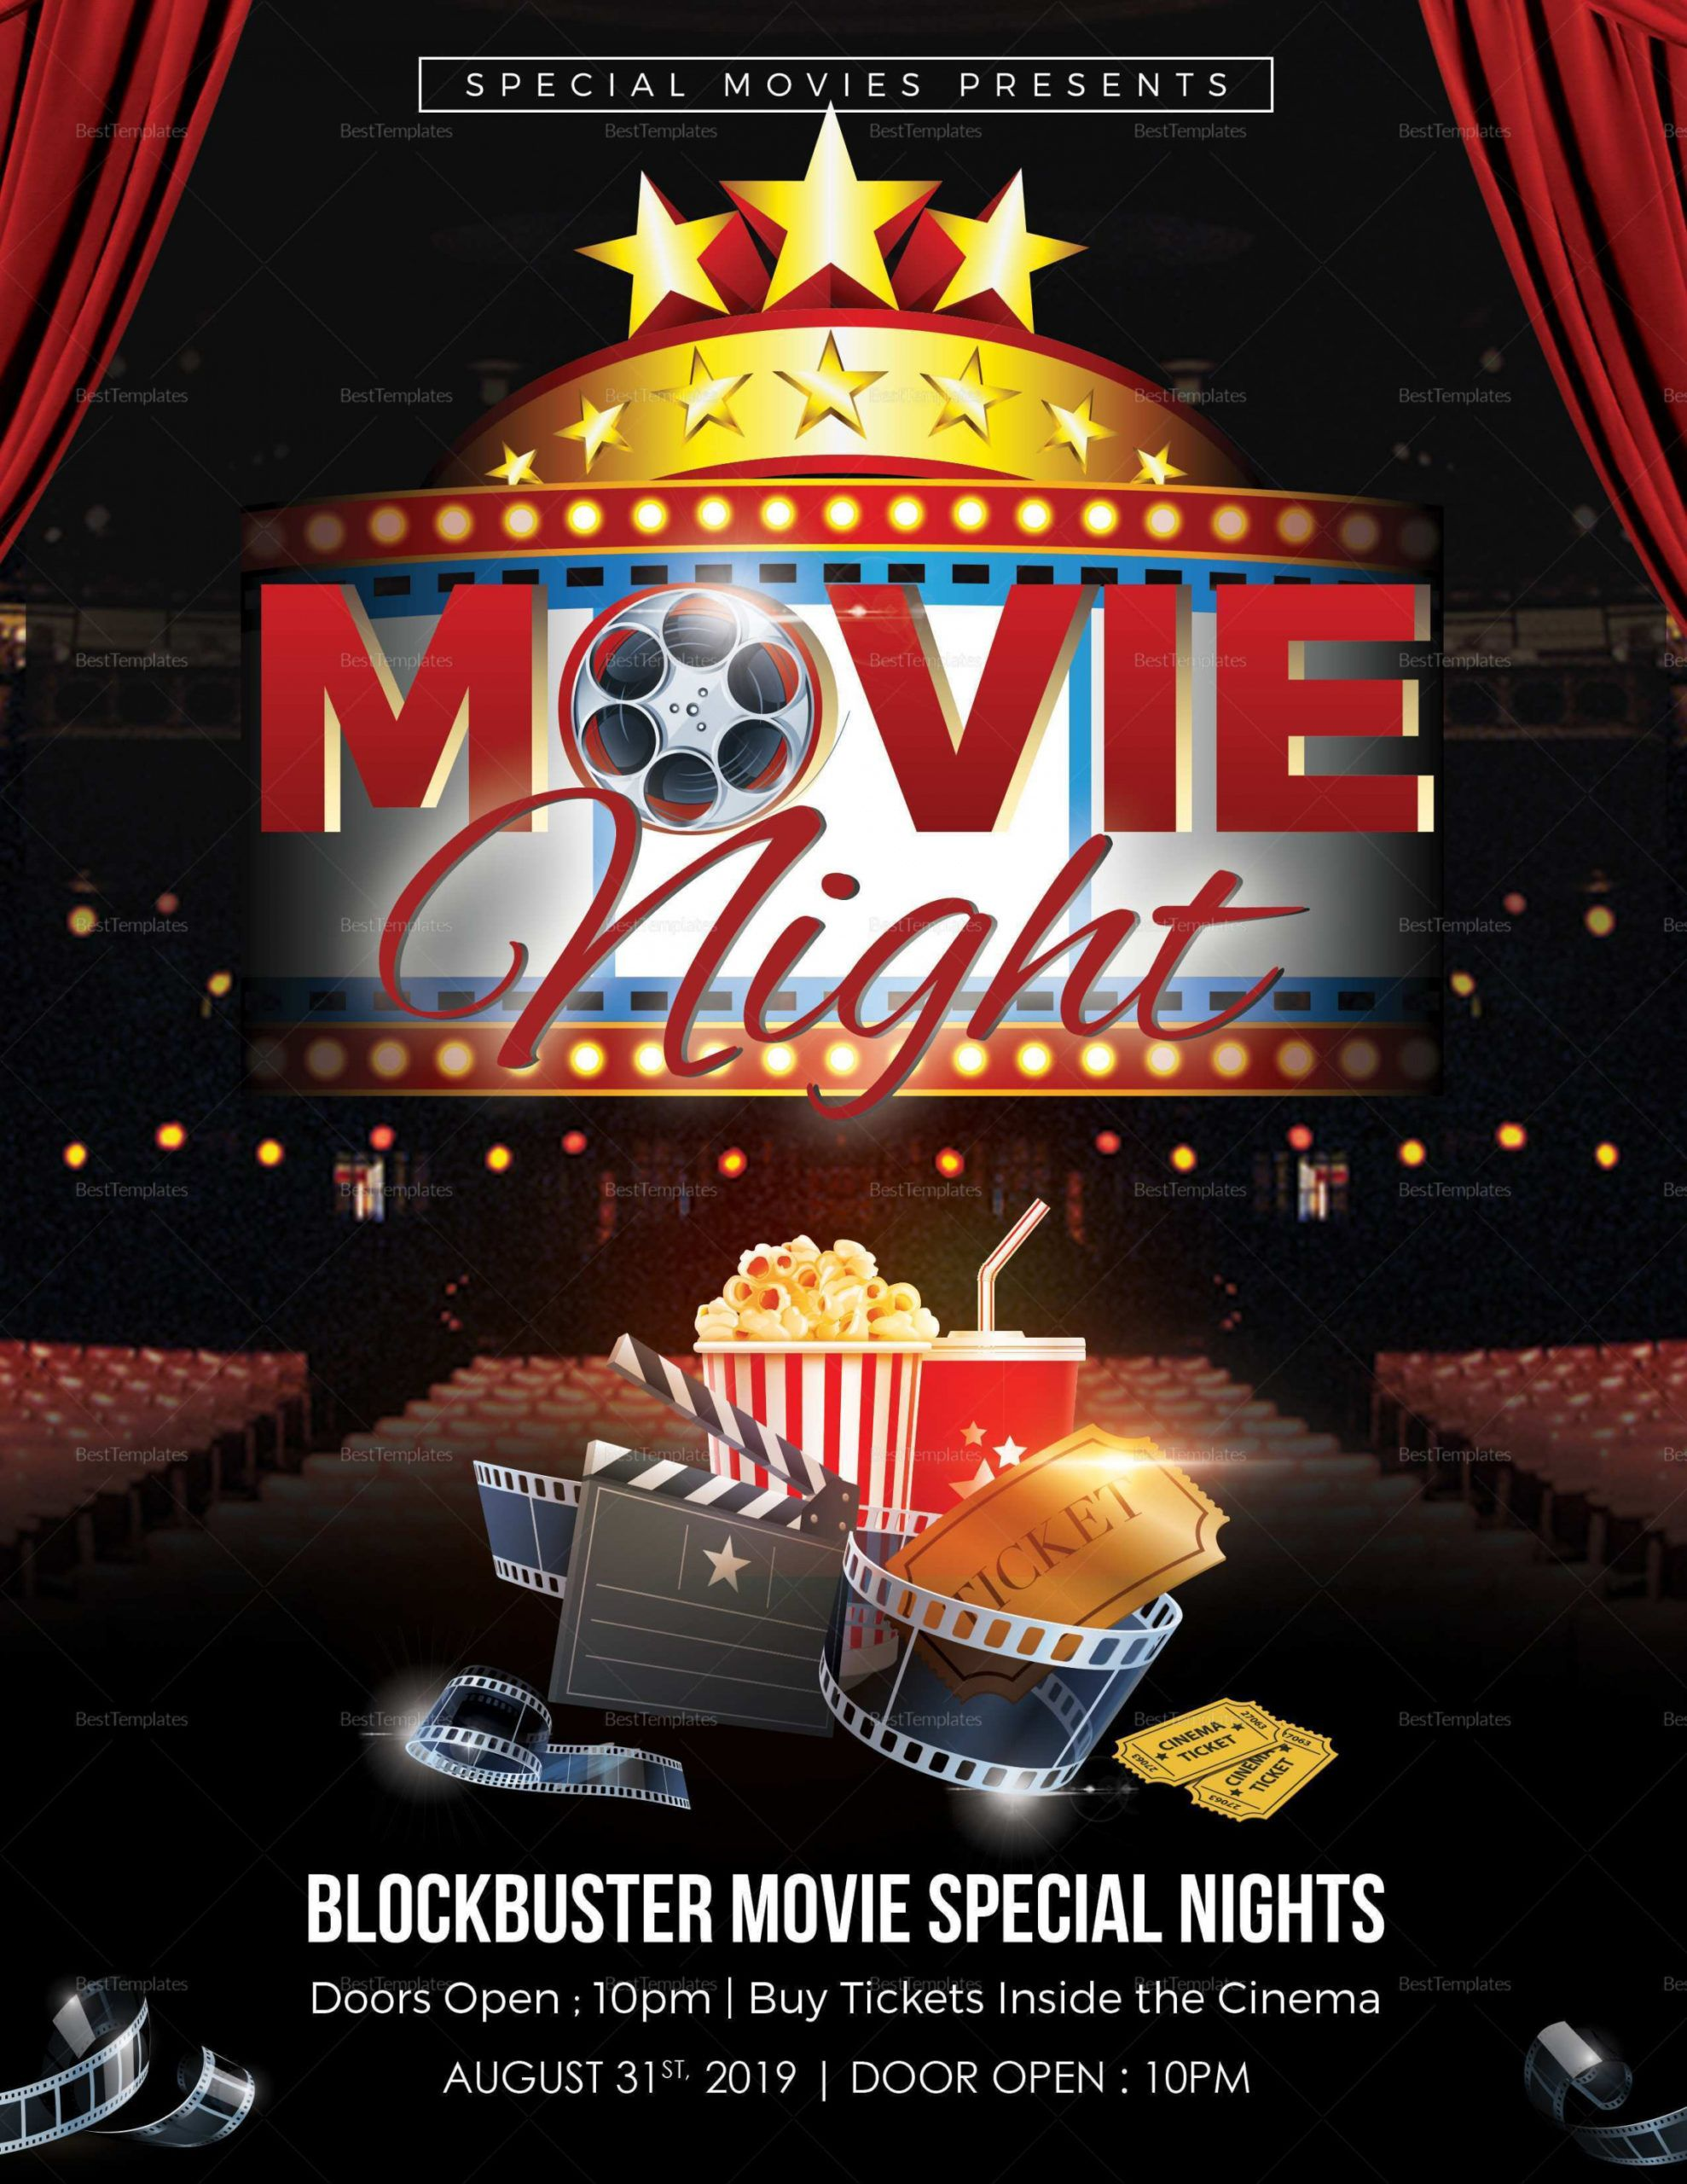 free 32 visiting family movie night flyer template photo by church movie night flyer template